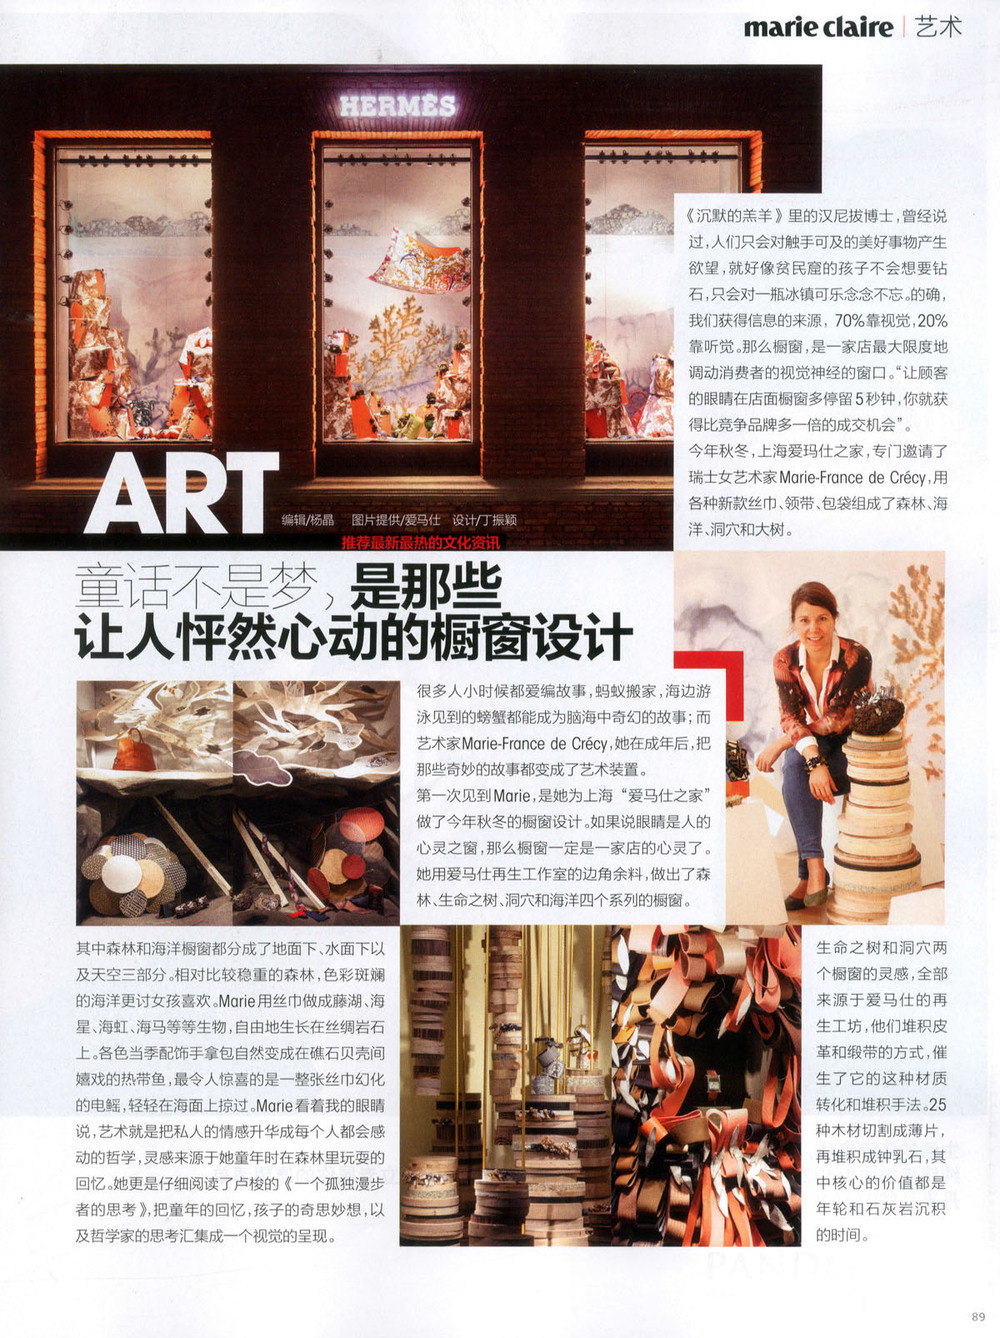 China-Marie Claire(嘉人)-December-P89-2.jpg